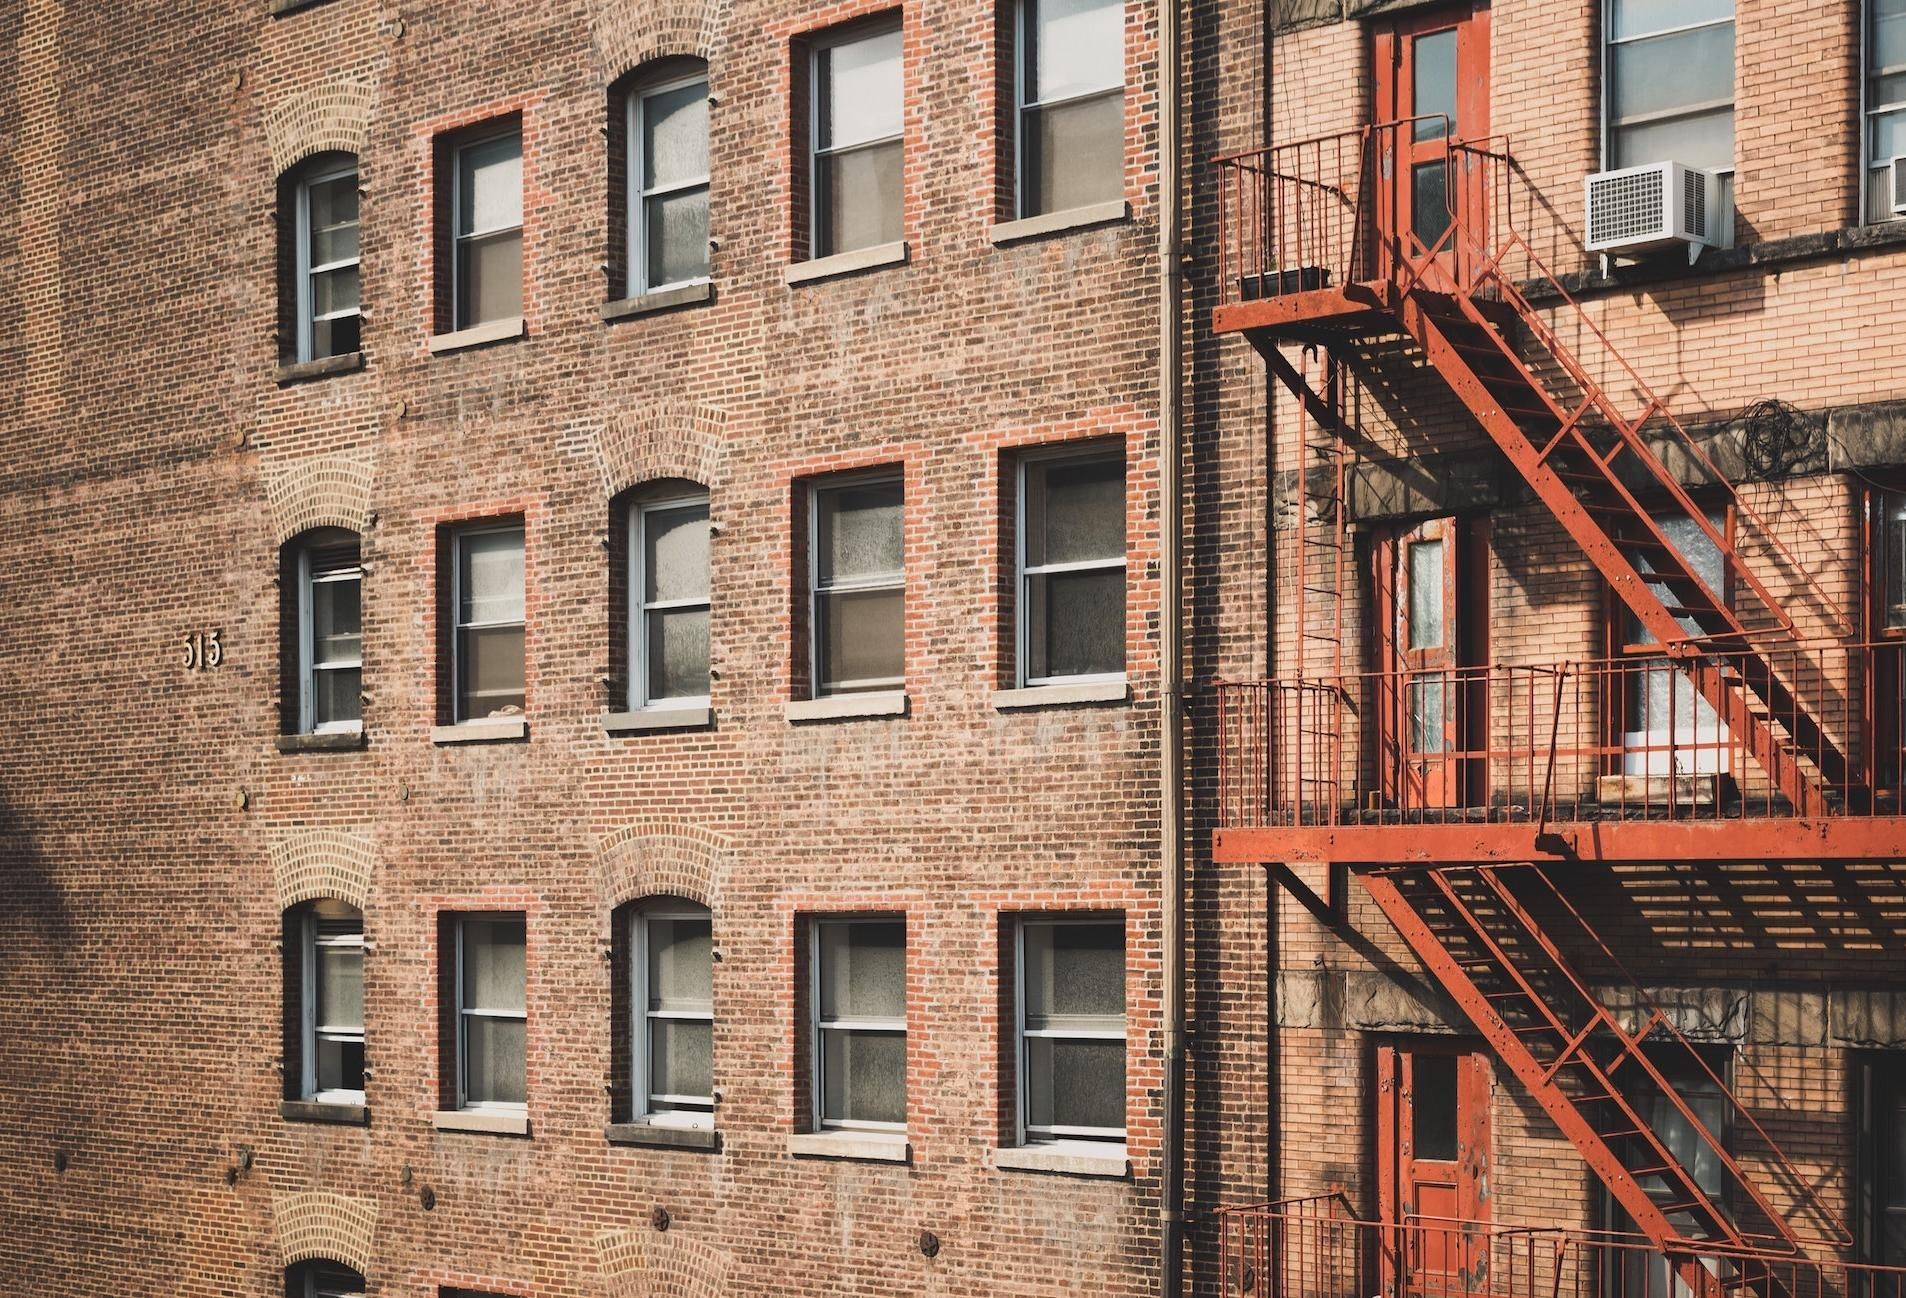 New Bill Takes Aim At Landlords Who Keep Stabilized Units Vacant